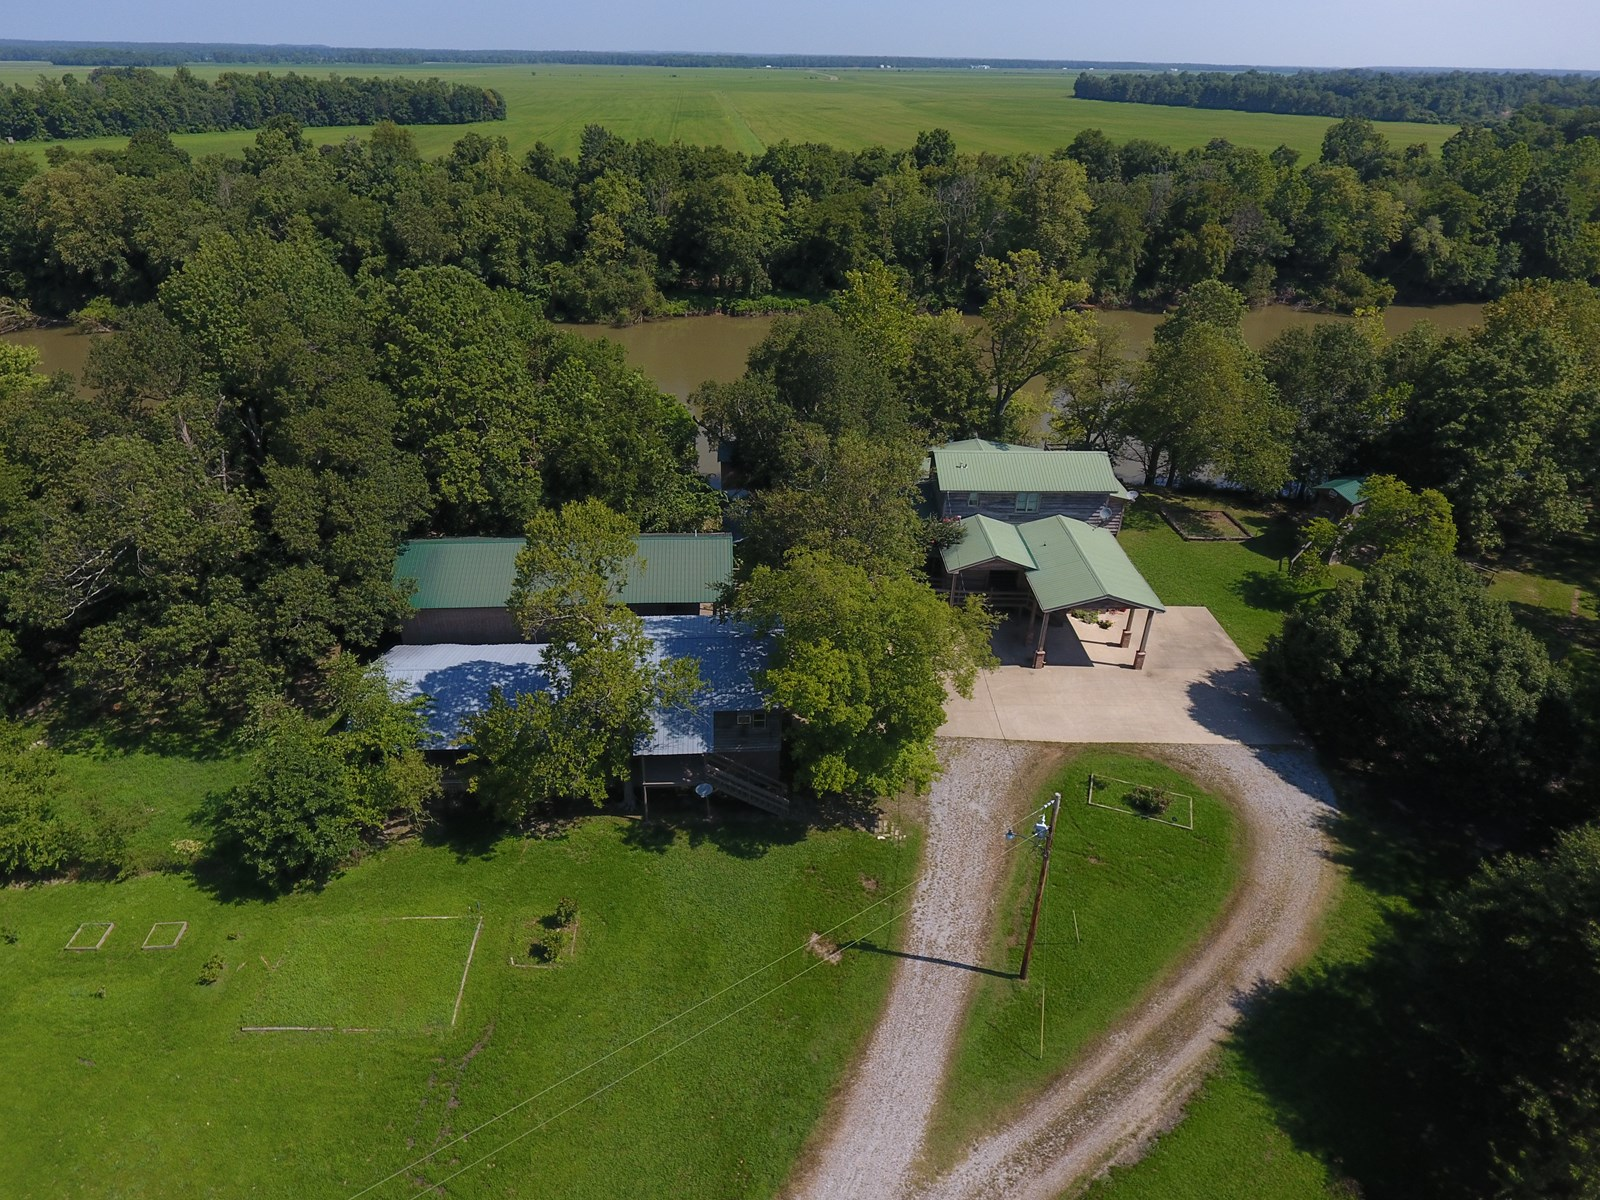 Arkansas Duck Hunting Fishing Lodge For Sale